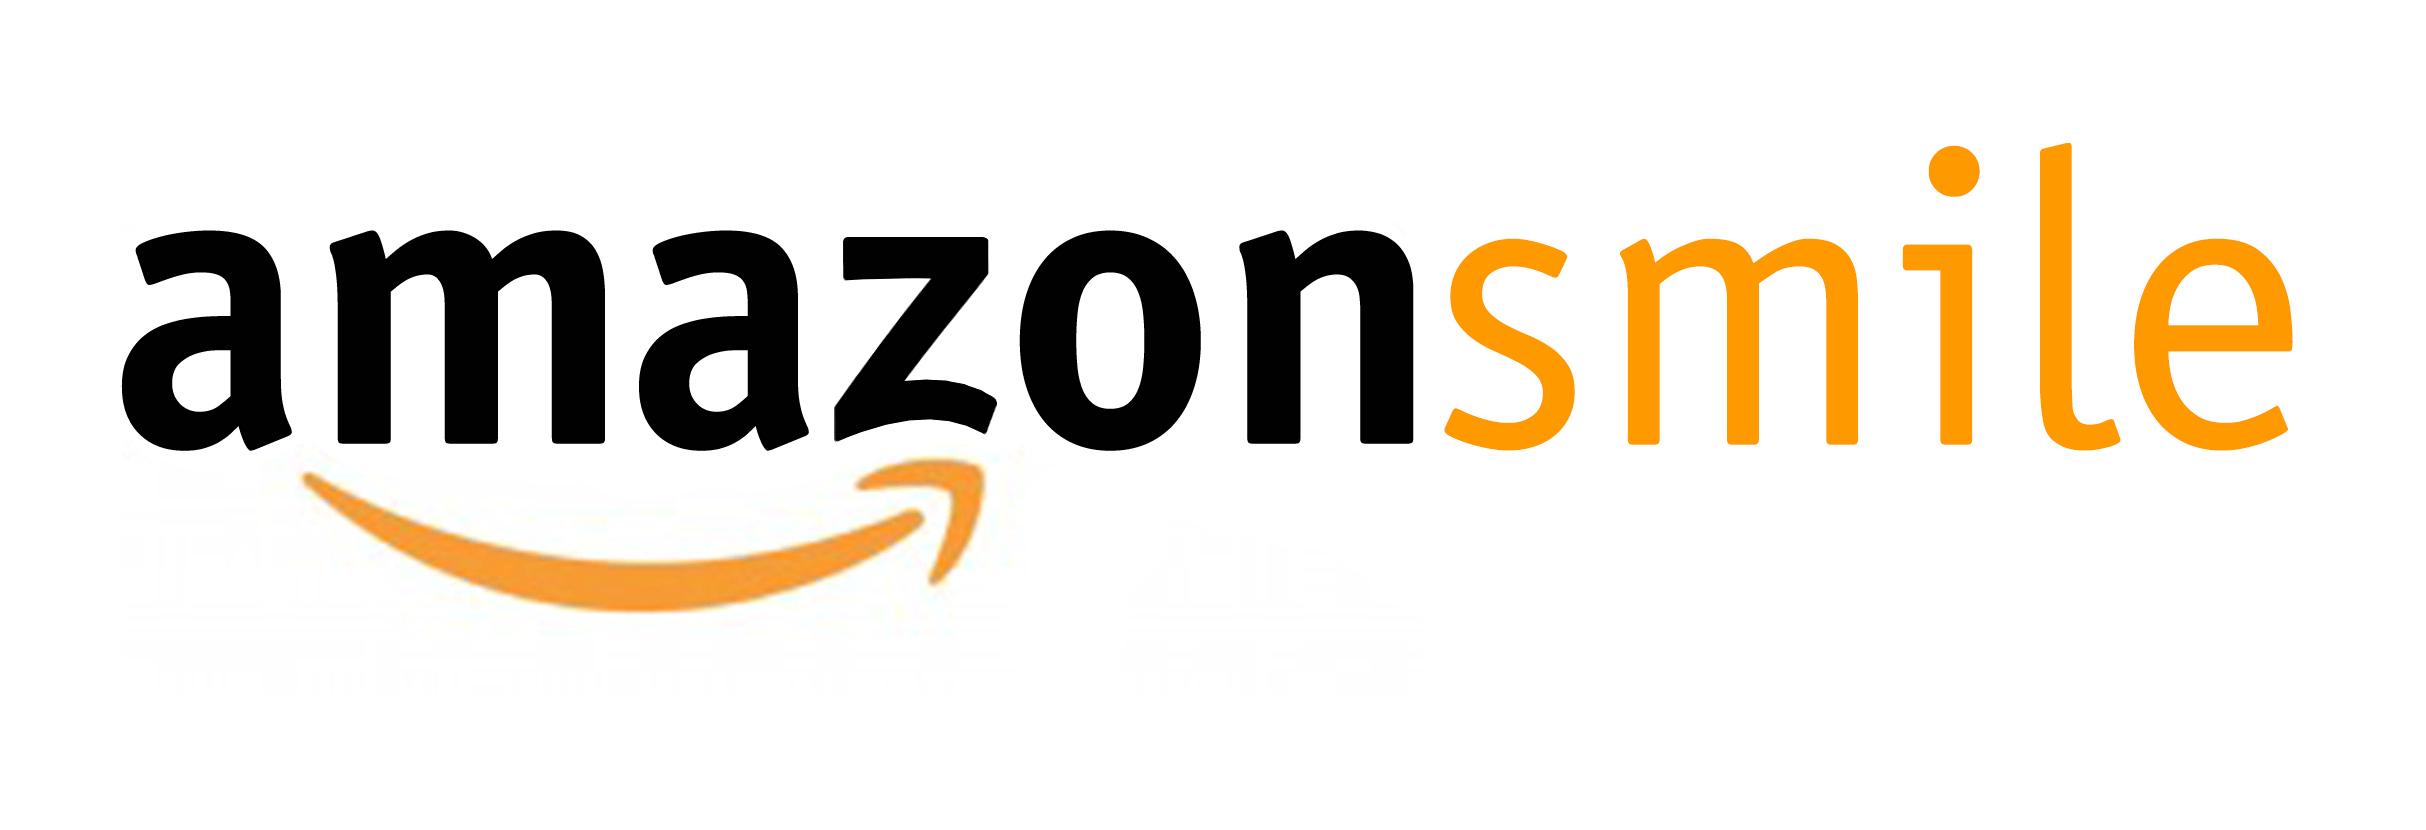 myesha m - Amazon-Smile-Logo